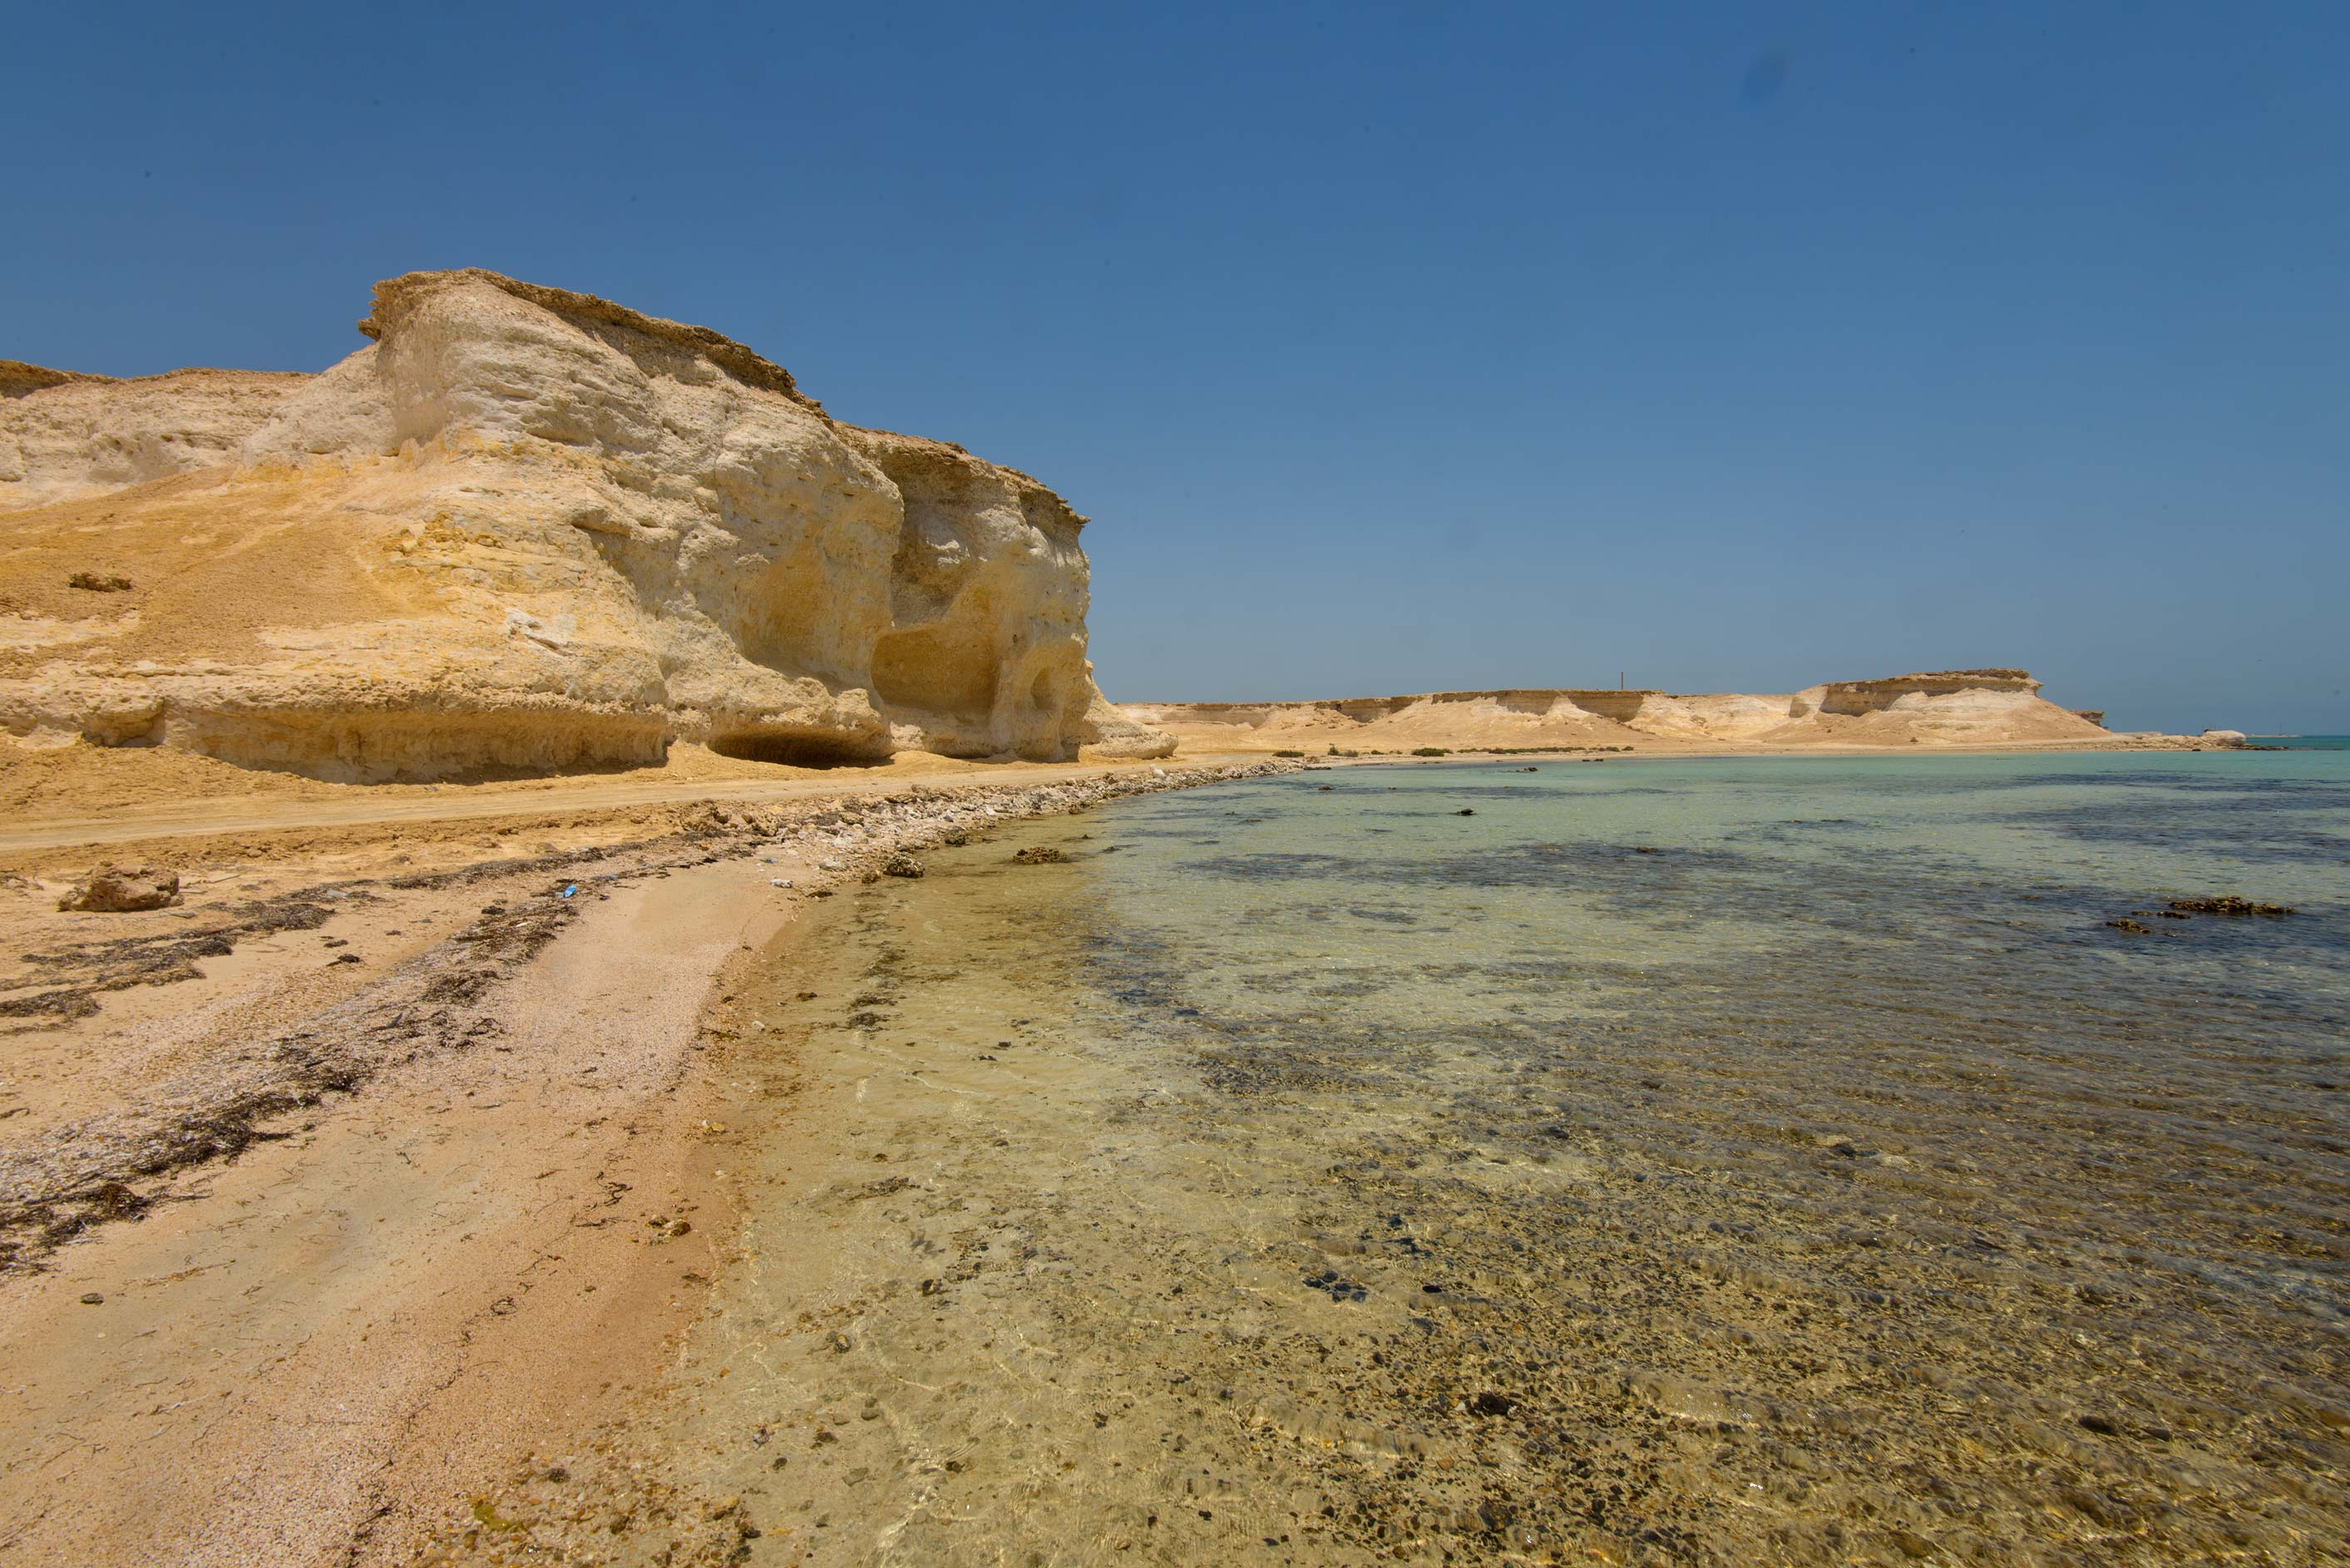 A beach in northern part of Ras Abrouq Peninsula, north from Zekreet. Qatar